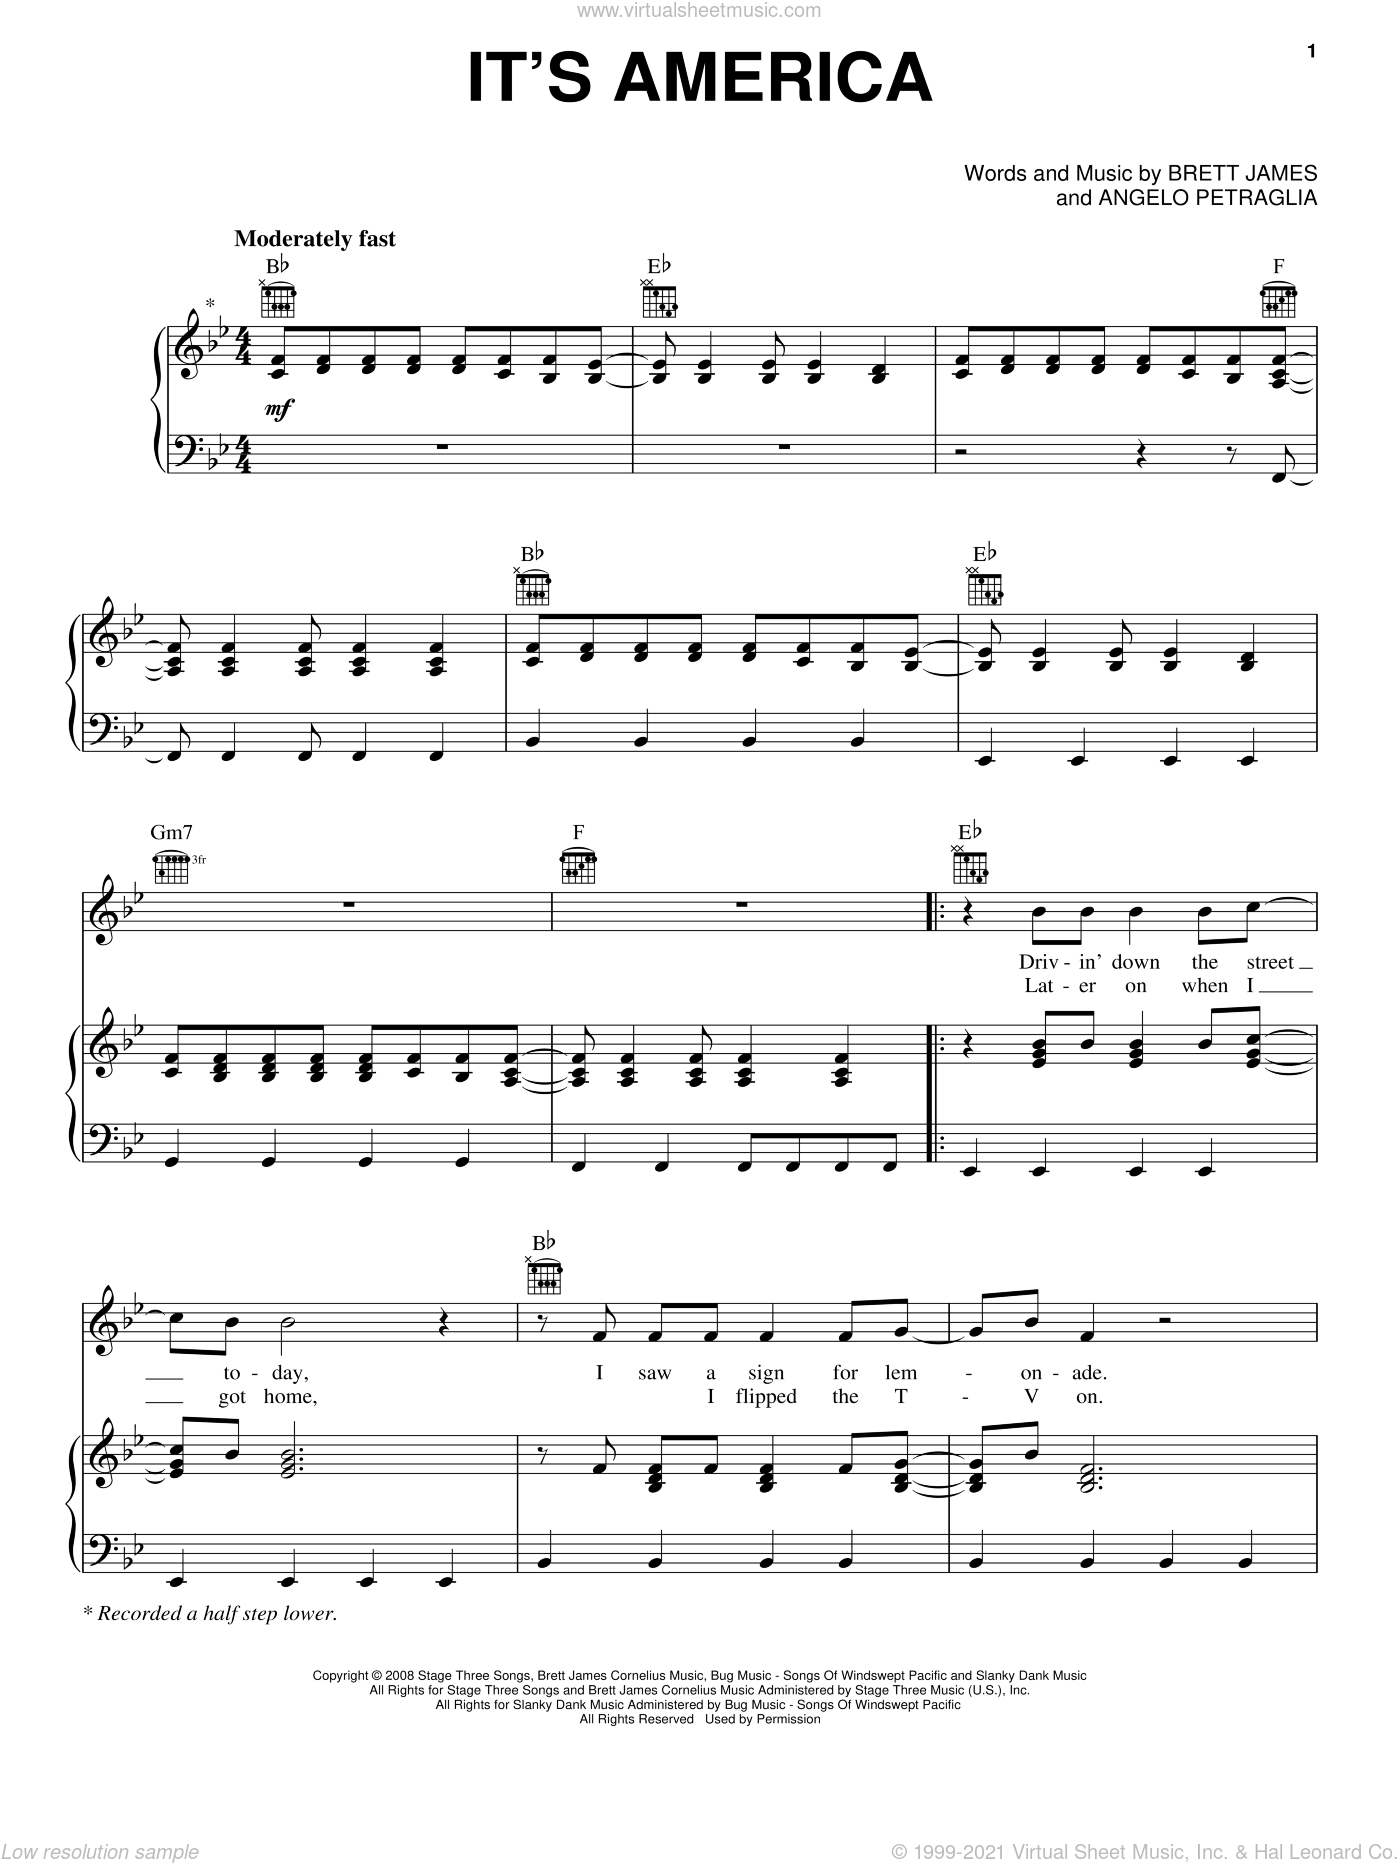 It's America sheet music for voice, piano or guitar by Brett James